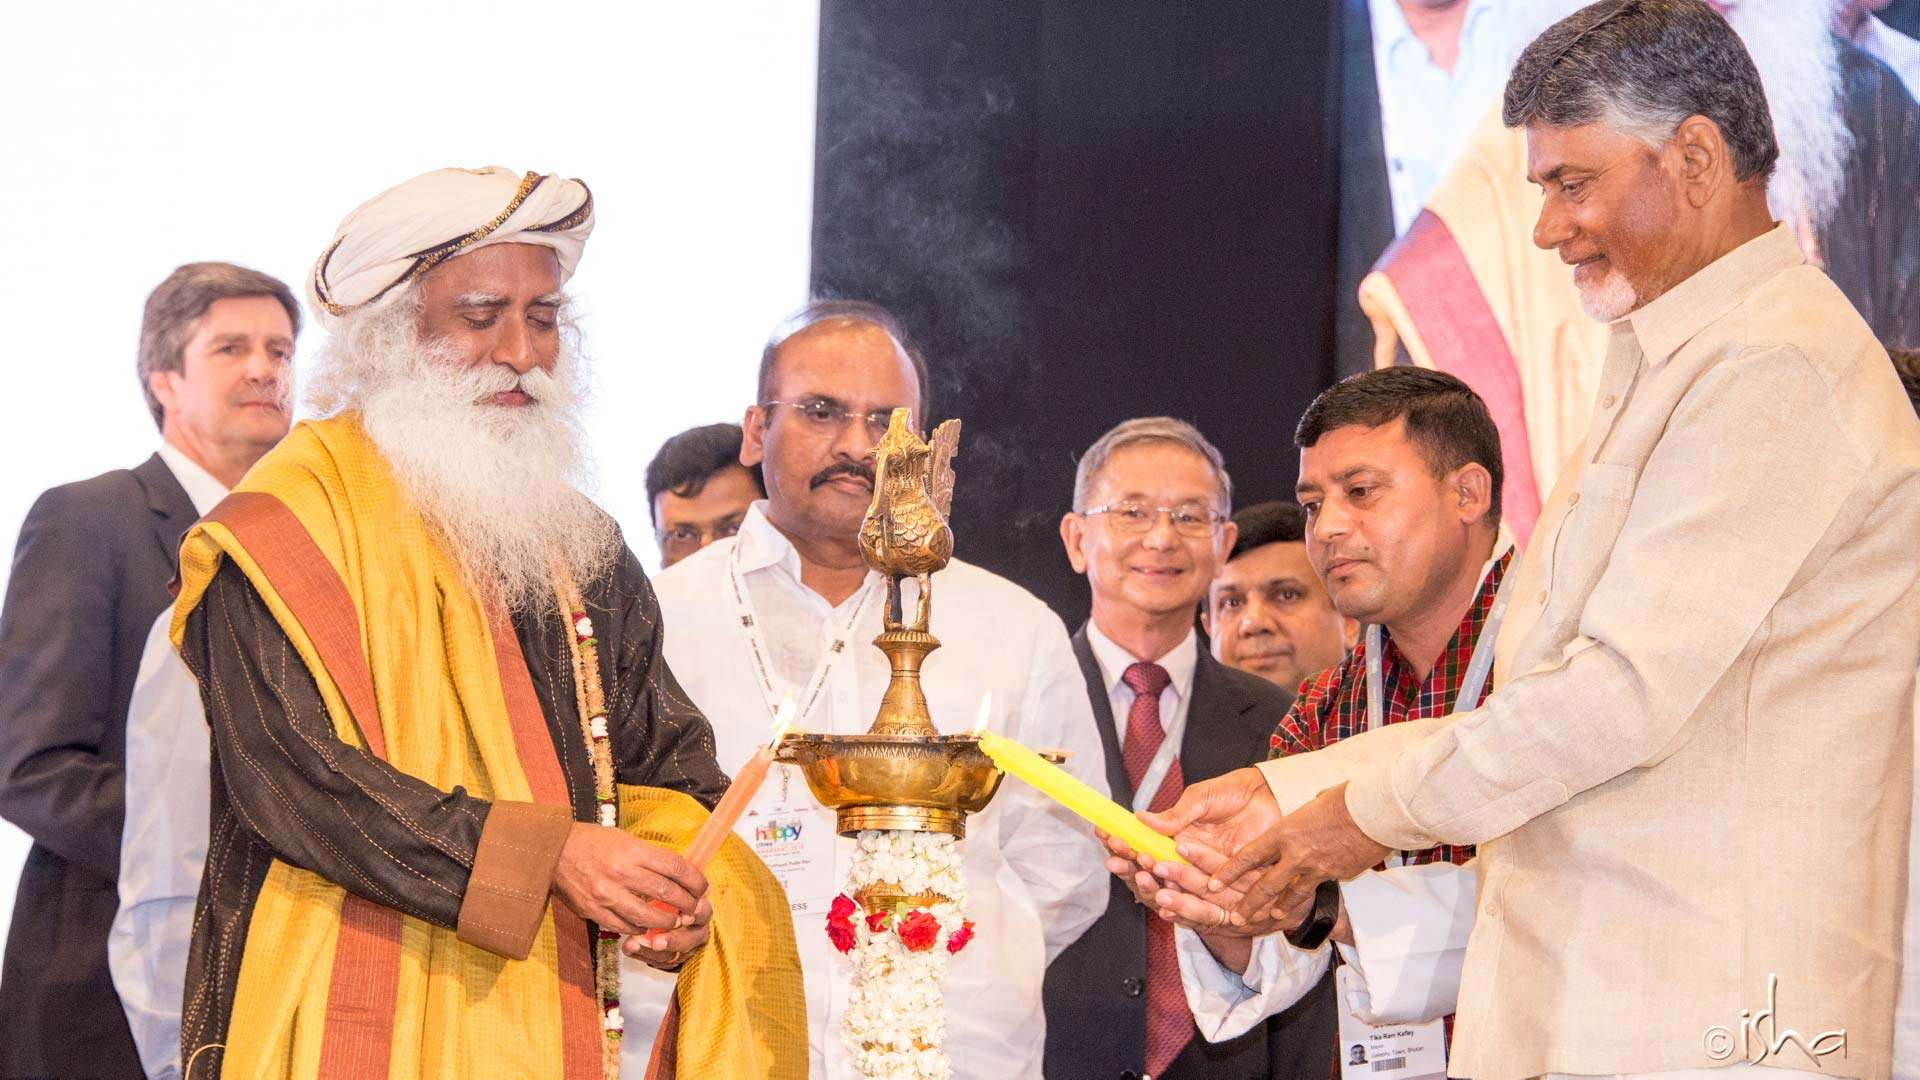 Sadhguru and Andhra Pradesh Chief Minister N. Chandrababu Naidu inaugurating the - Happy Cities Summit 2018 - in Amaravati